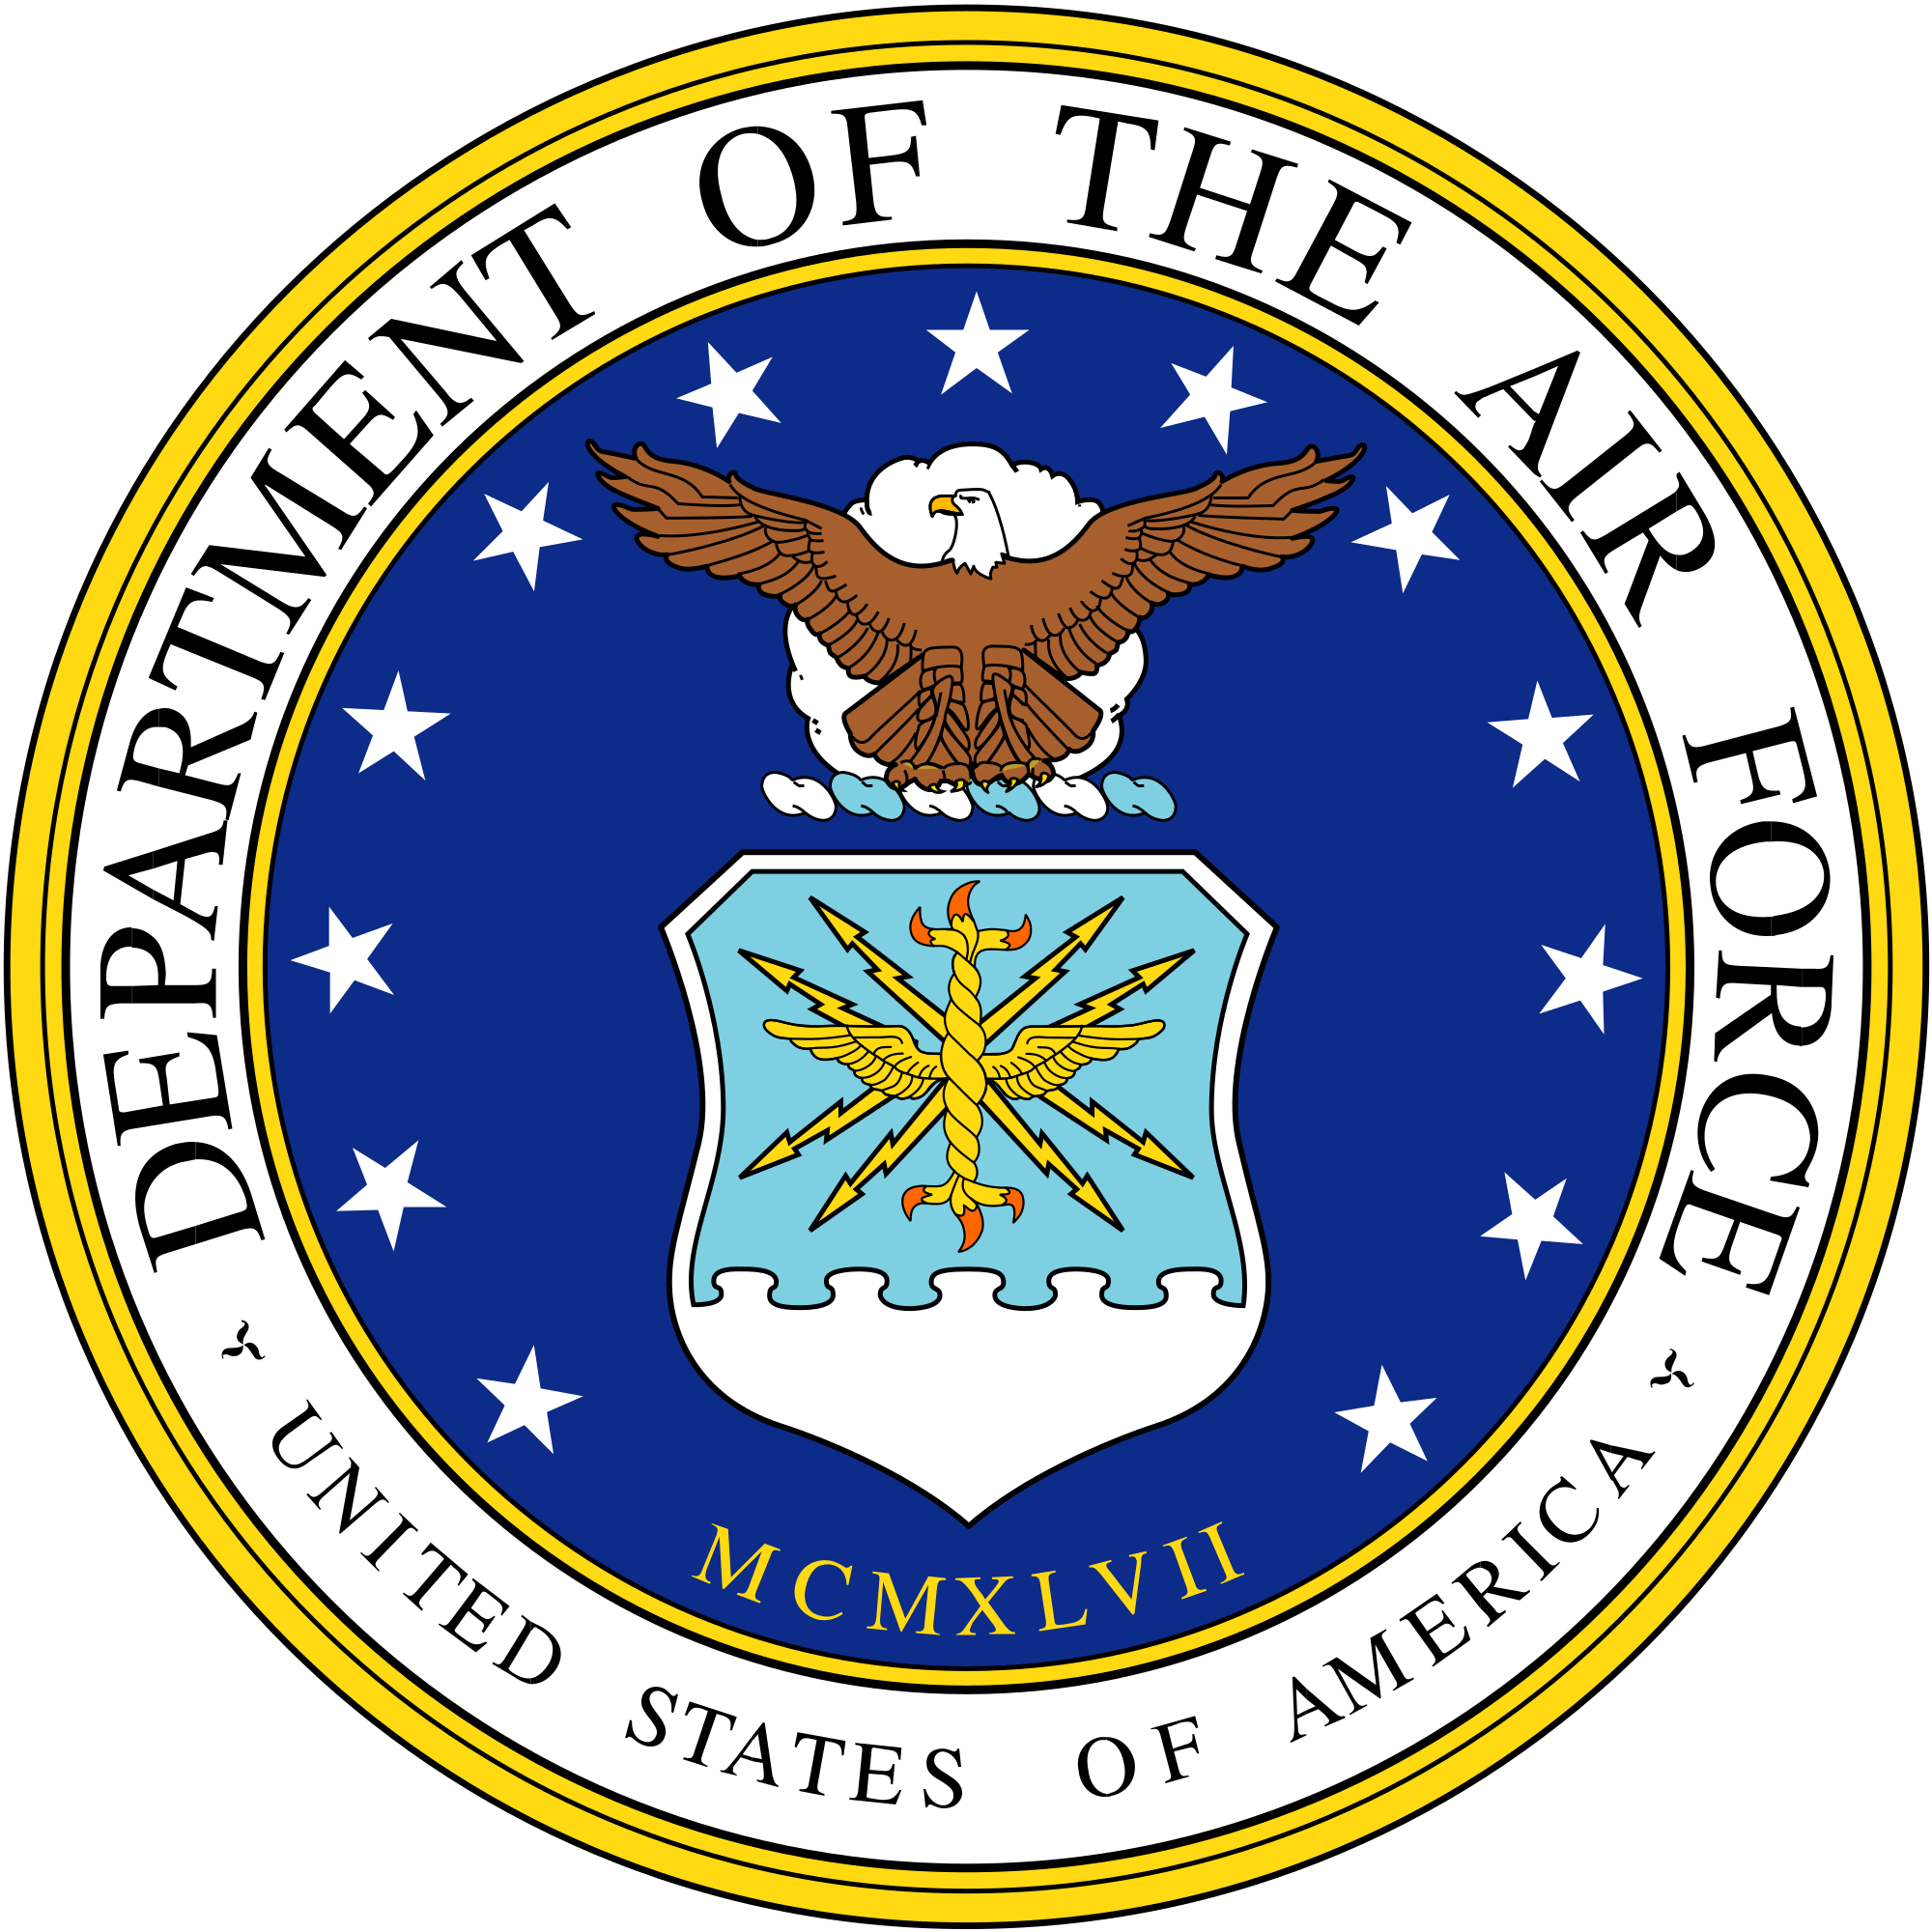 Air force seal png. File of the united